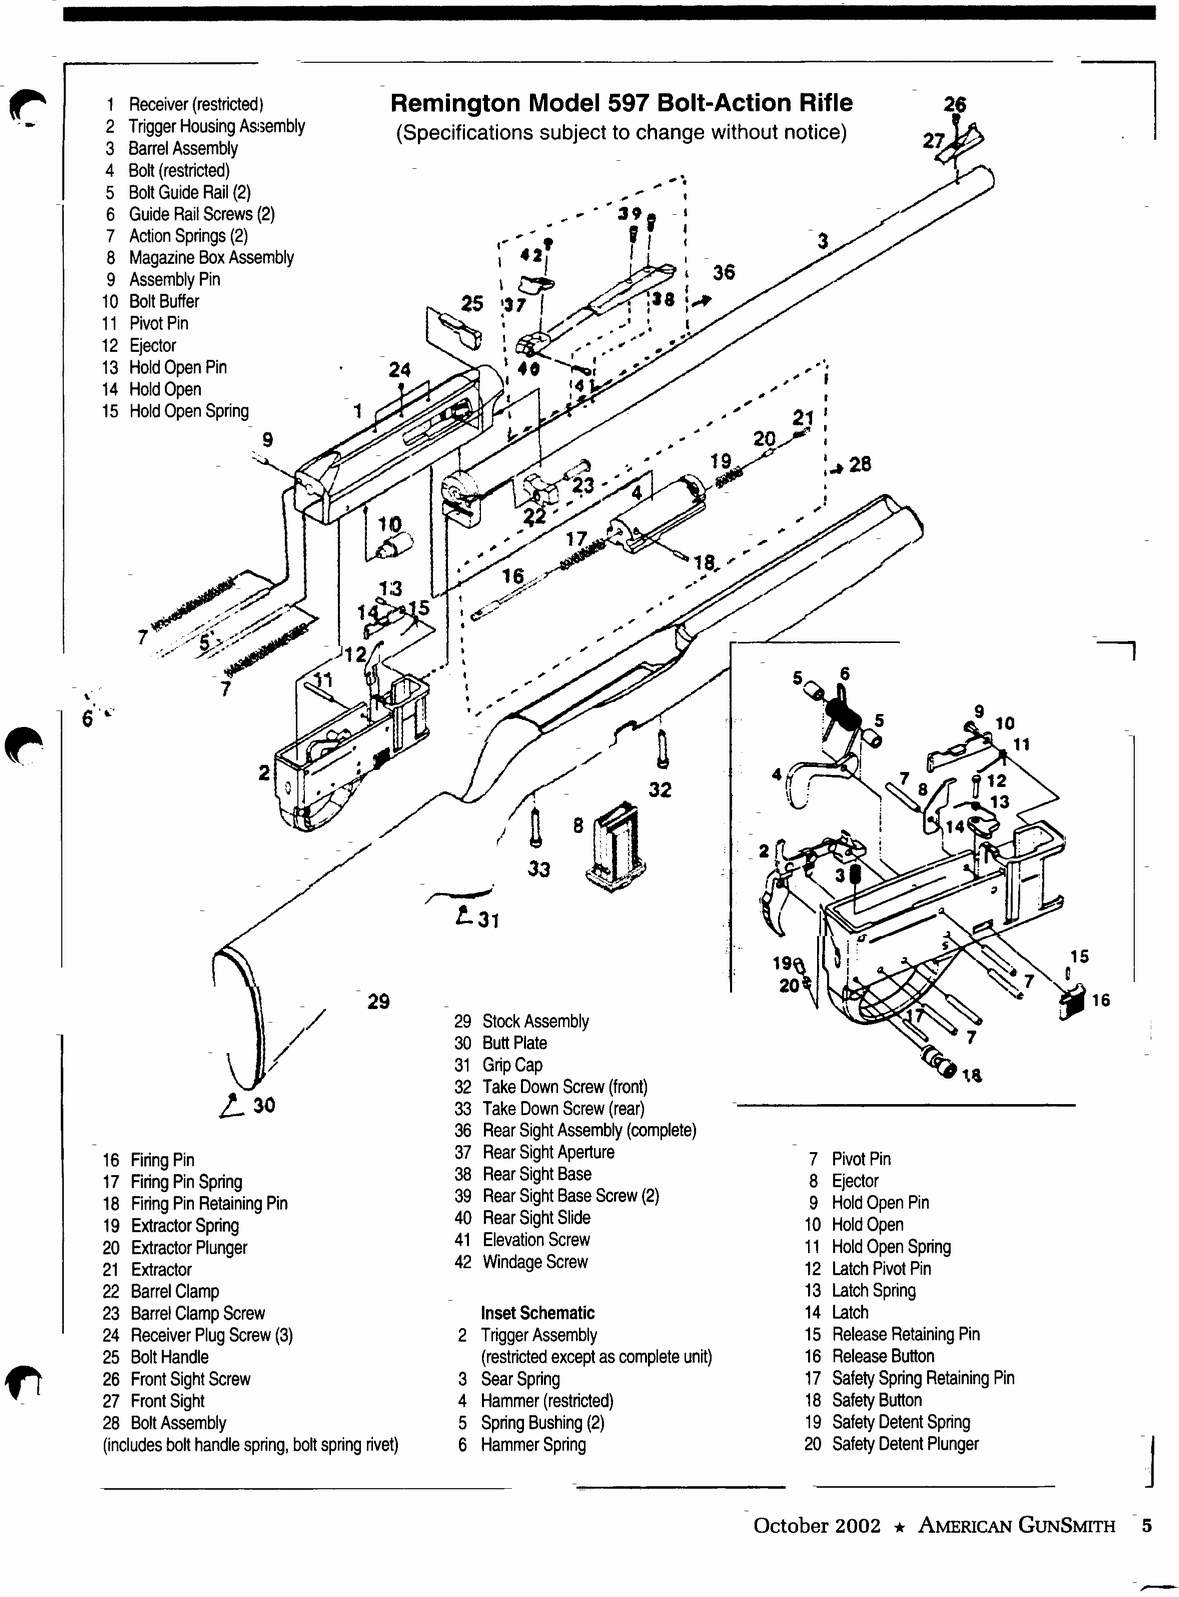 receiver, bolt & barrel parts images - frompo wiring diagram for 2005 pontiac grand prix headlight assembly diagram for remington 597 bolt assembly #4